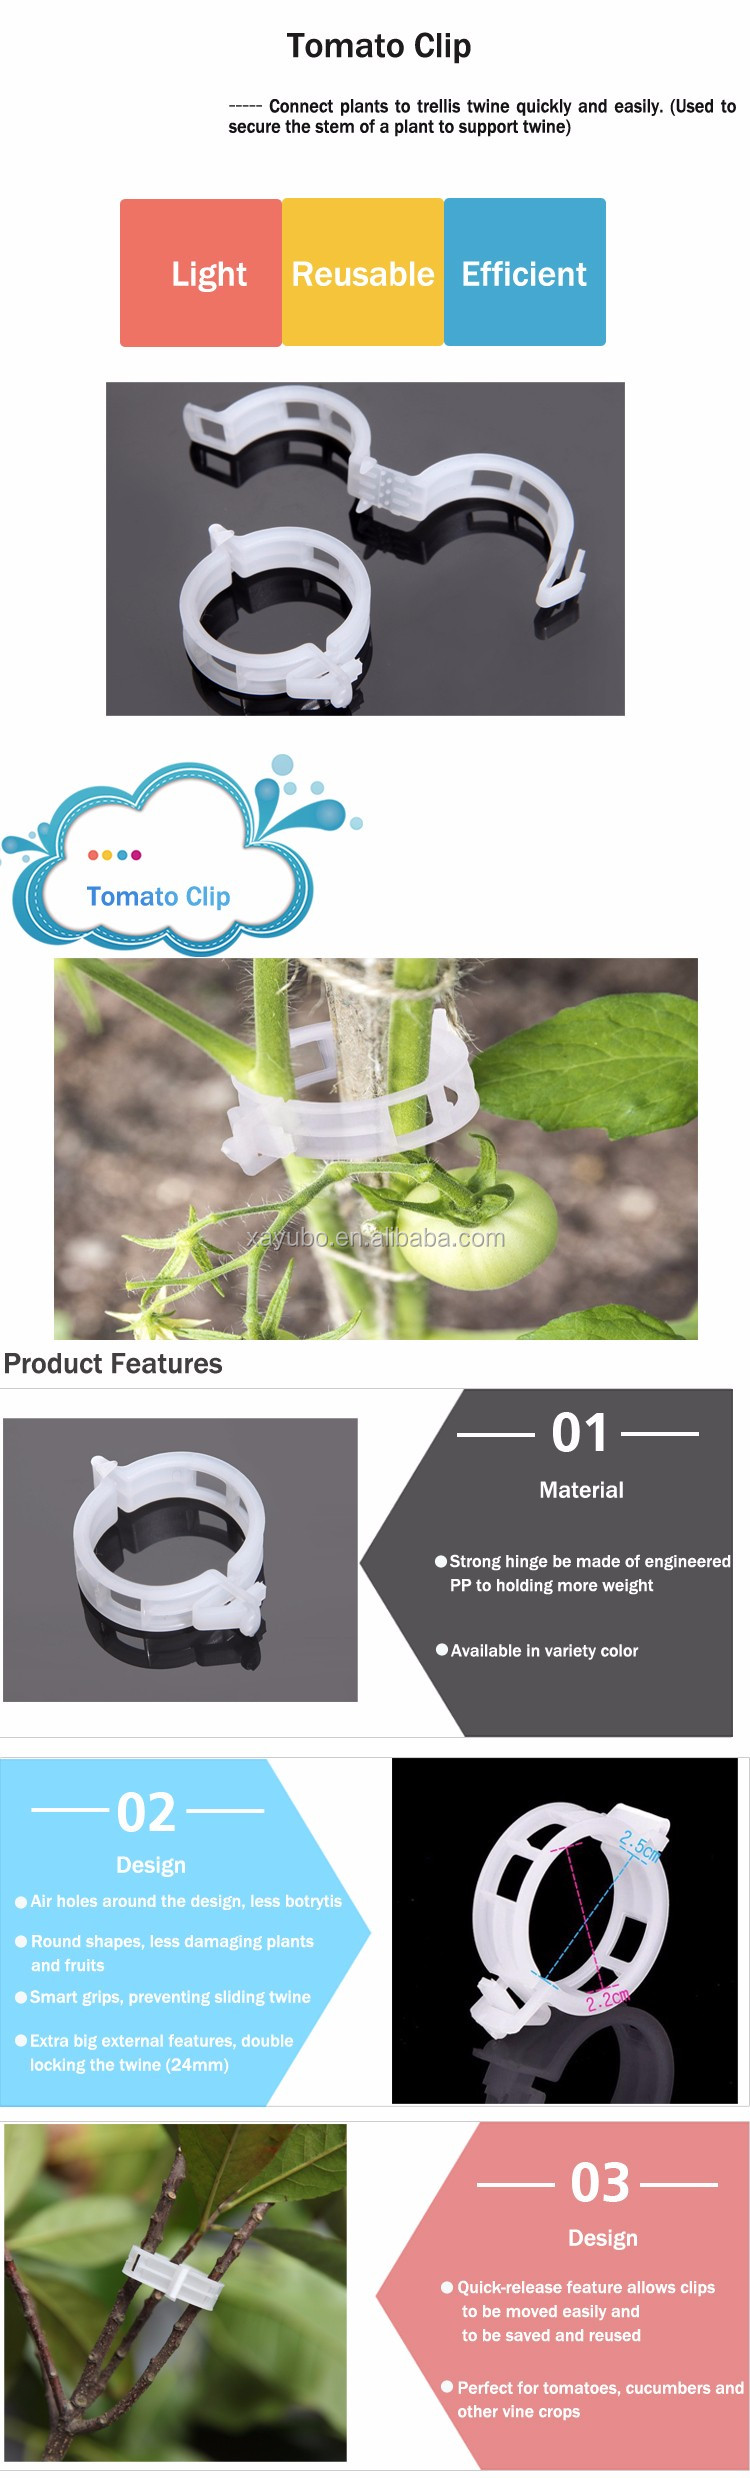 2017 New Durable 24mm Support Tomato Clips For Vine Garden Vegetables